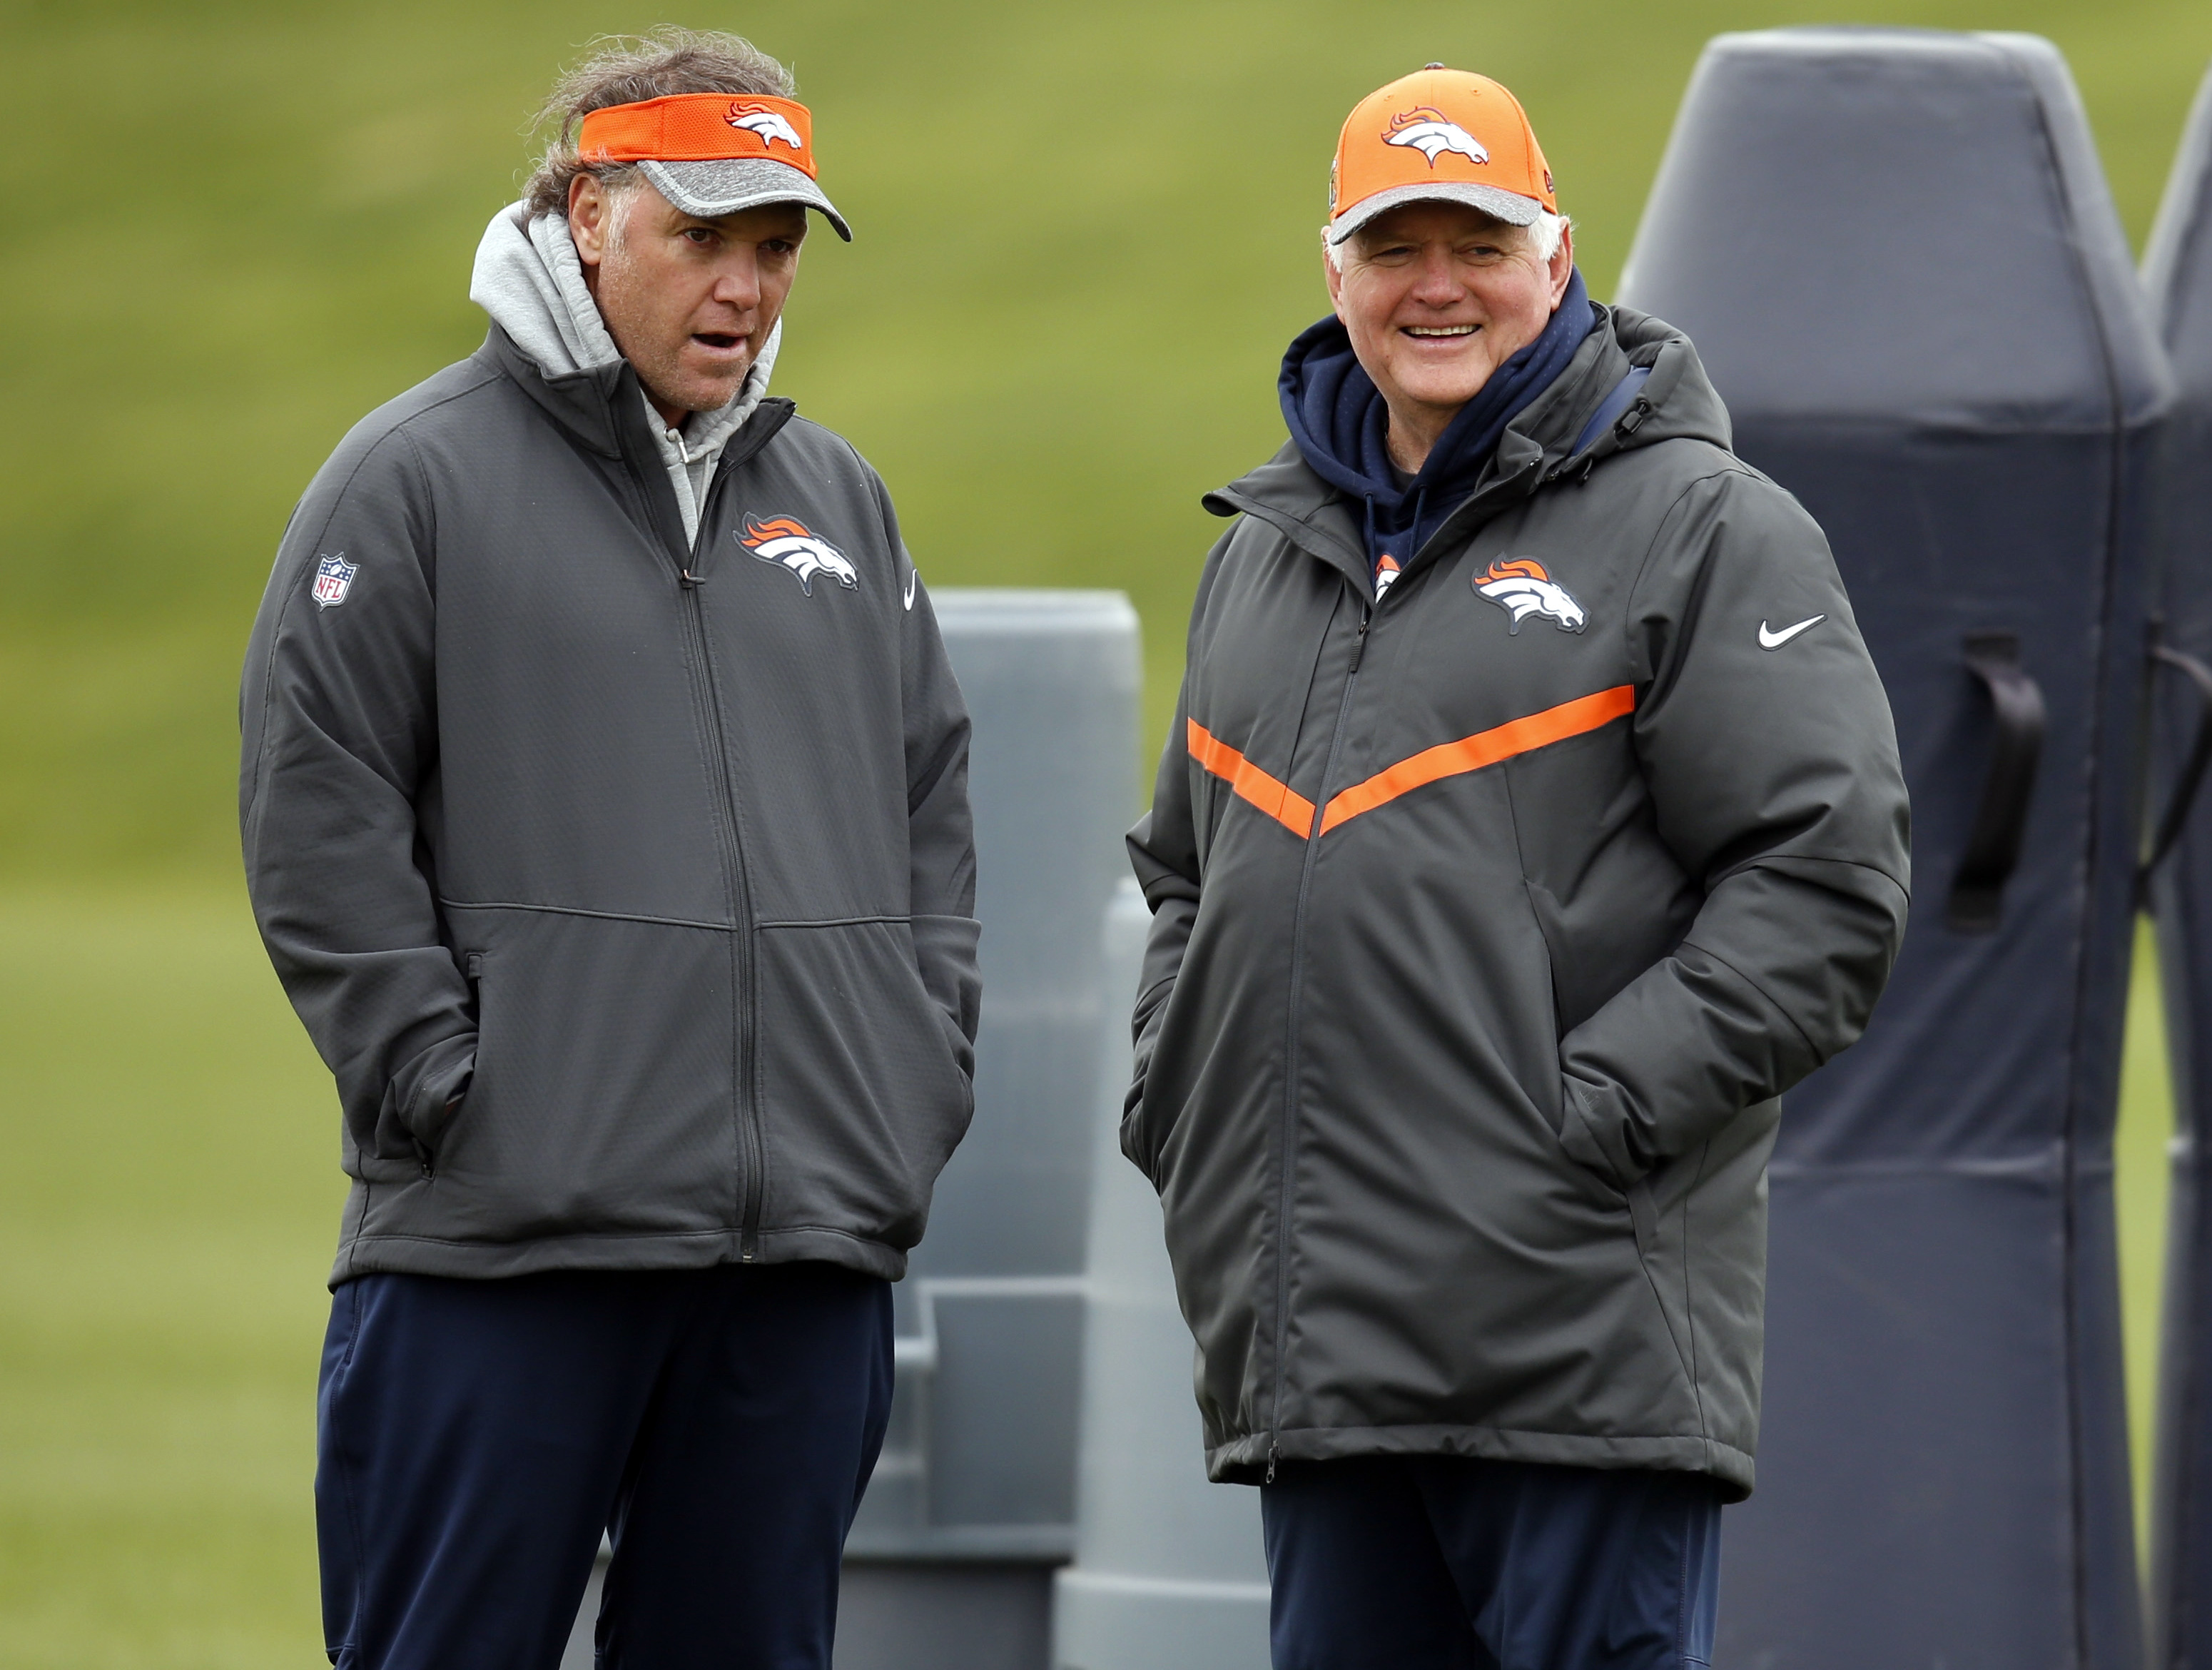 FILE - In this May 7, 2016, file photo, Denver Broncos special teams coach Joe DeCamillis, left, and defensive coordinator Wade Phillips watch during the team's NFL rookie camp football practice in Englewood, Colo. DeCamillis insists he doesn't see steppi